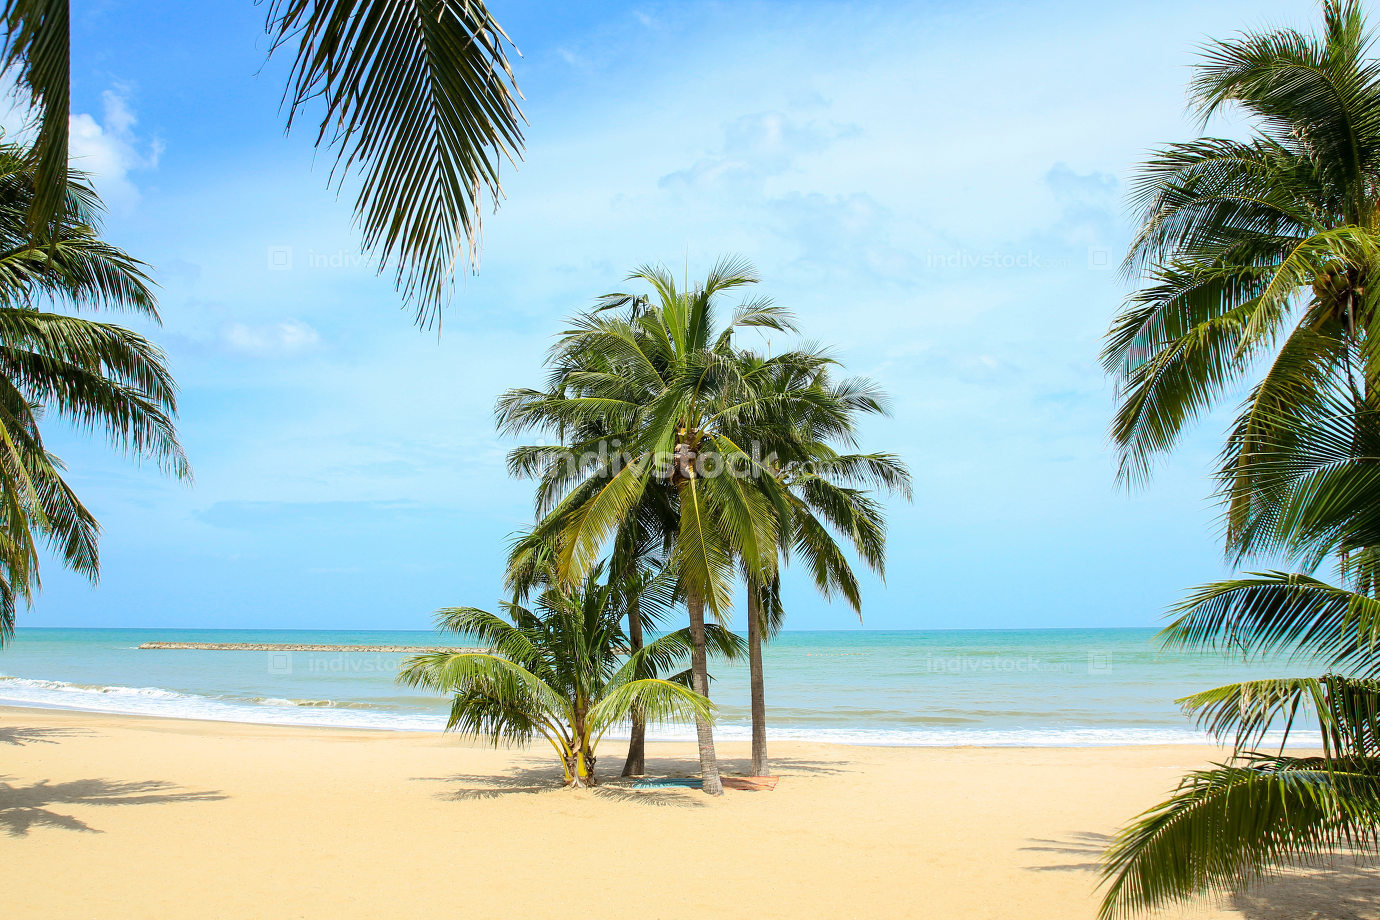 Coconut Palm Tree on The beach in Thailand.